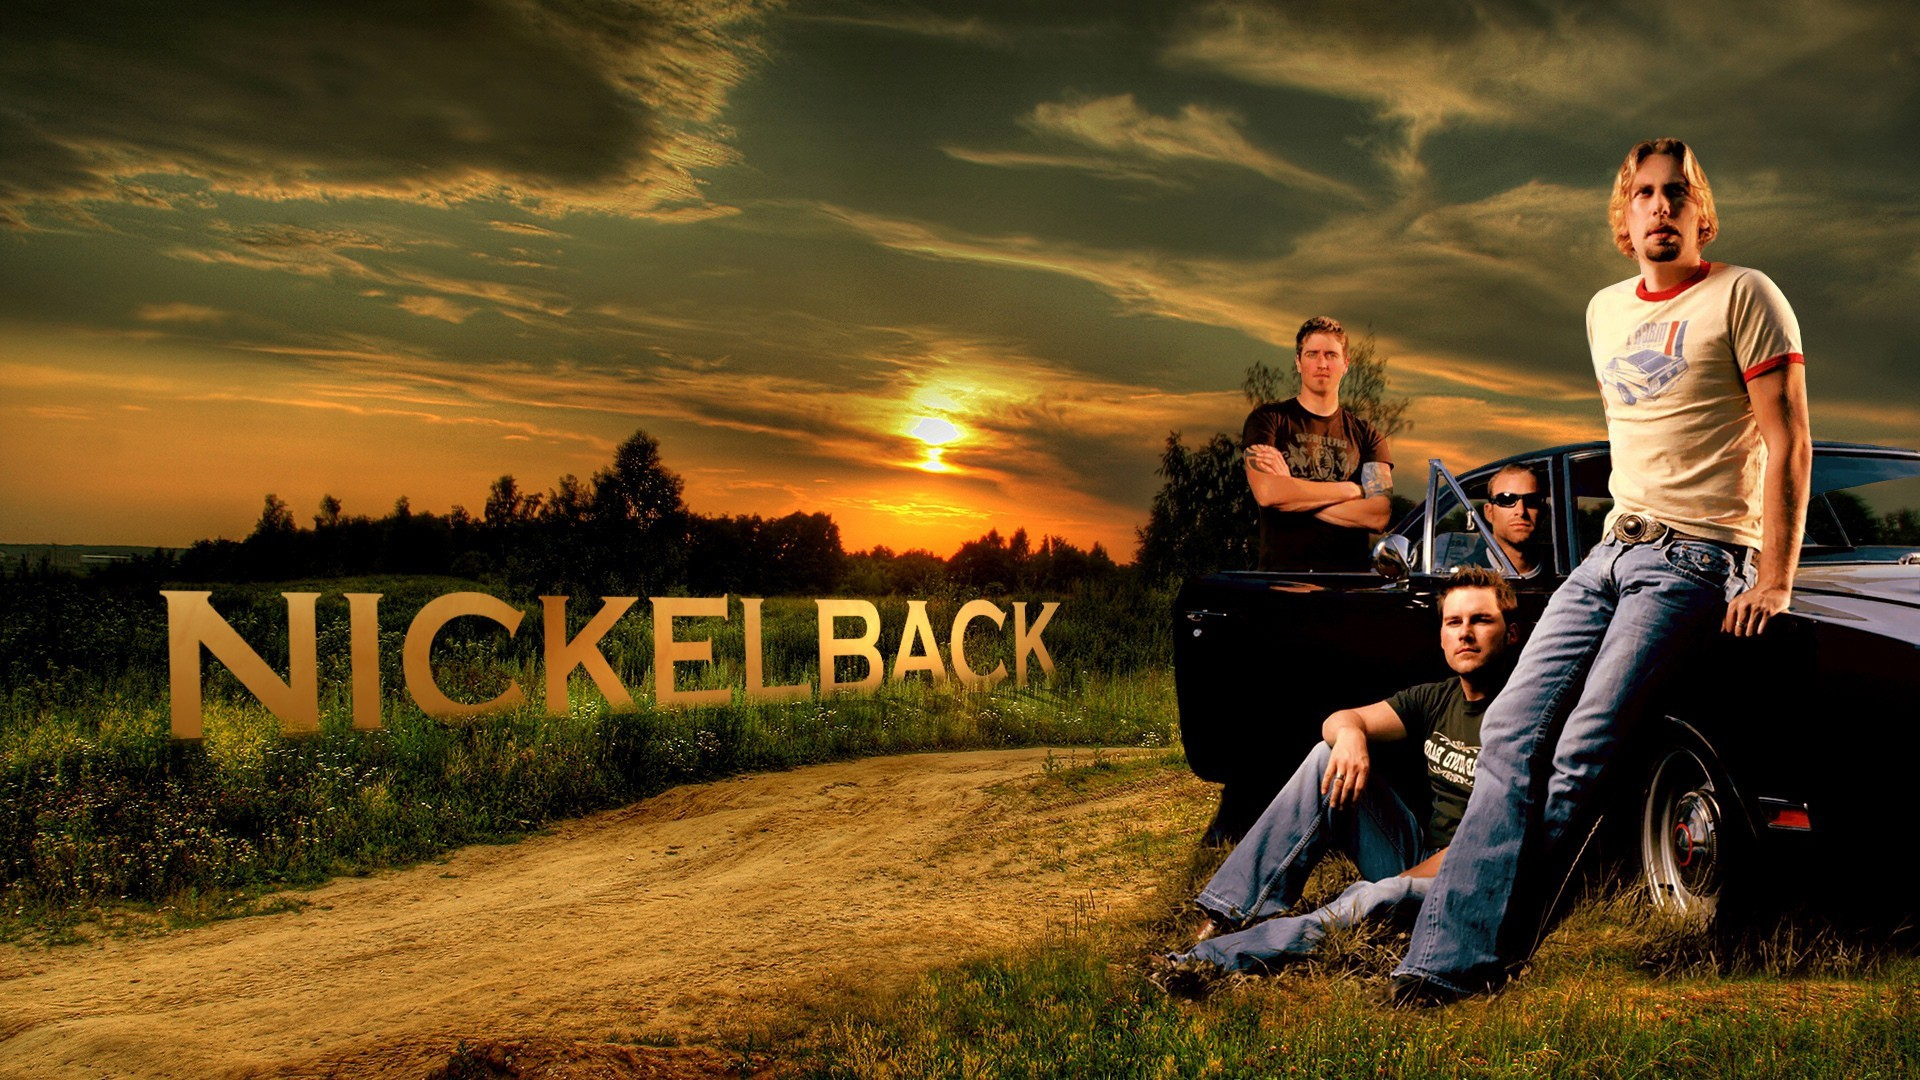 Nickleback Computer Wallpaper